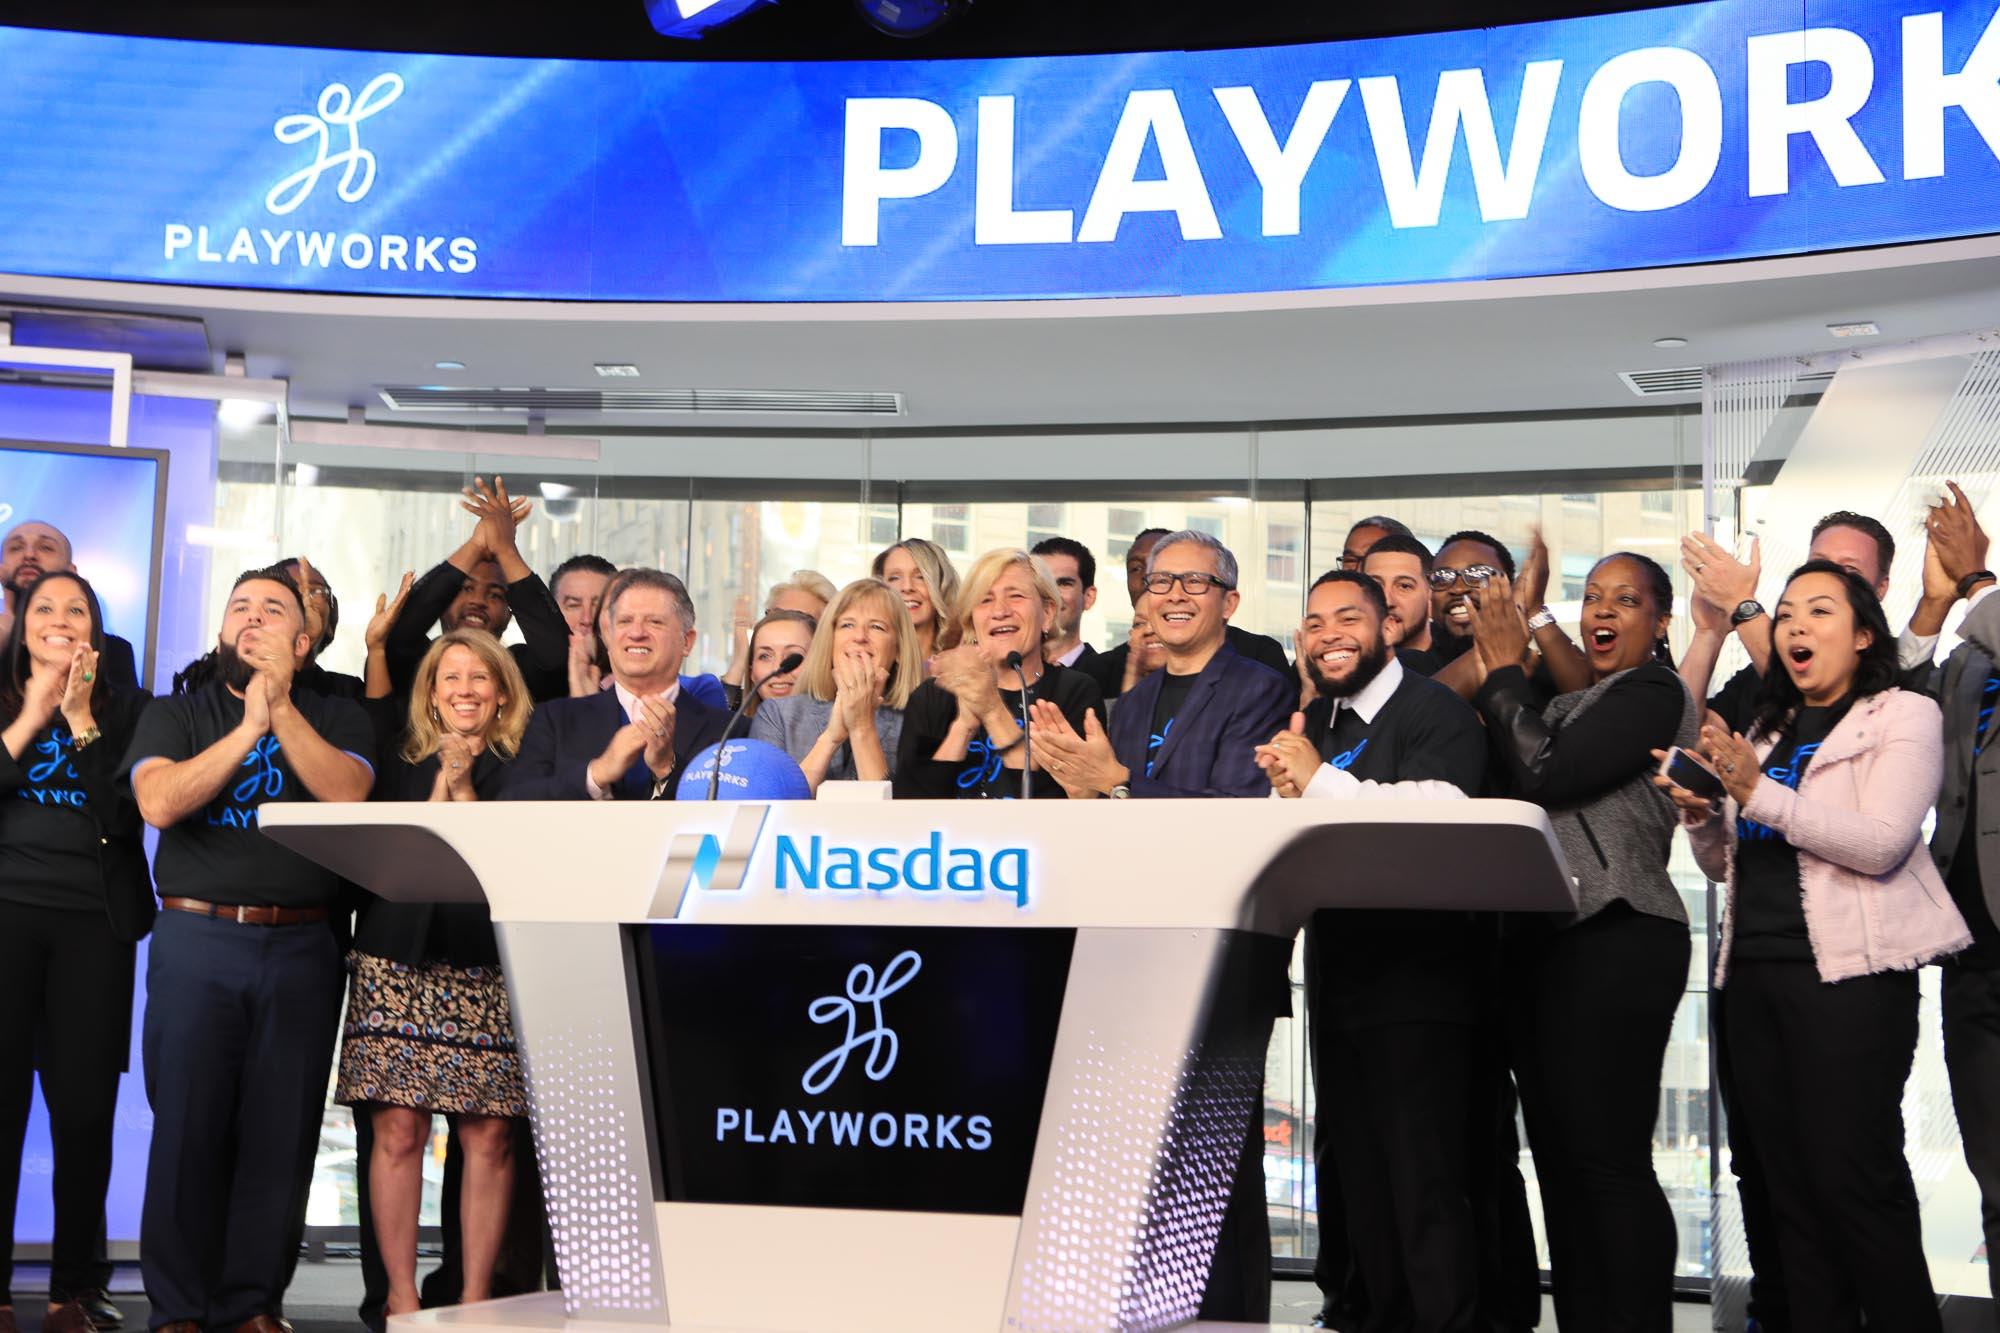 Tom joined the Playworks New York New Jersey team to ring the opening bell. May 2017.